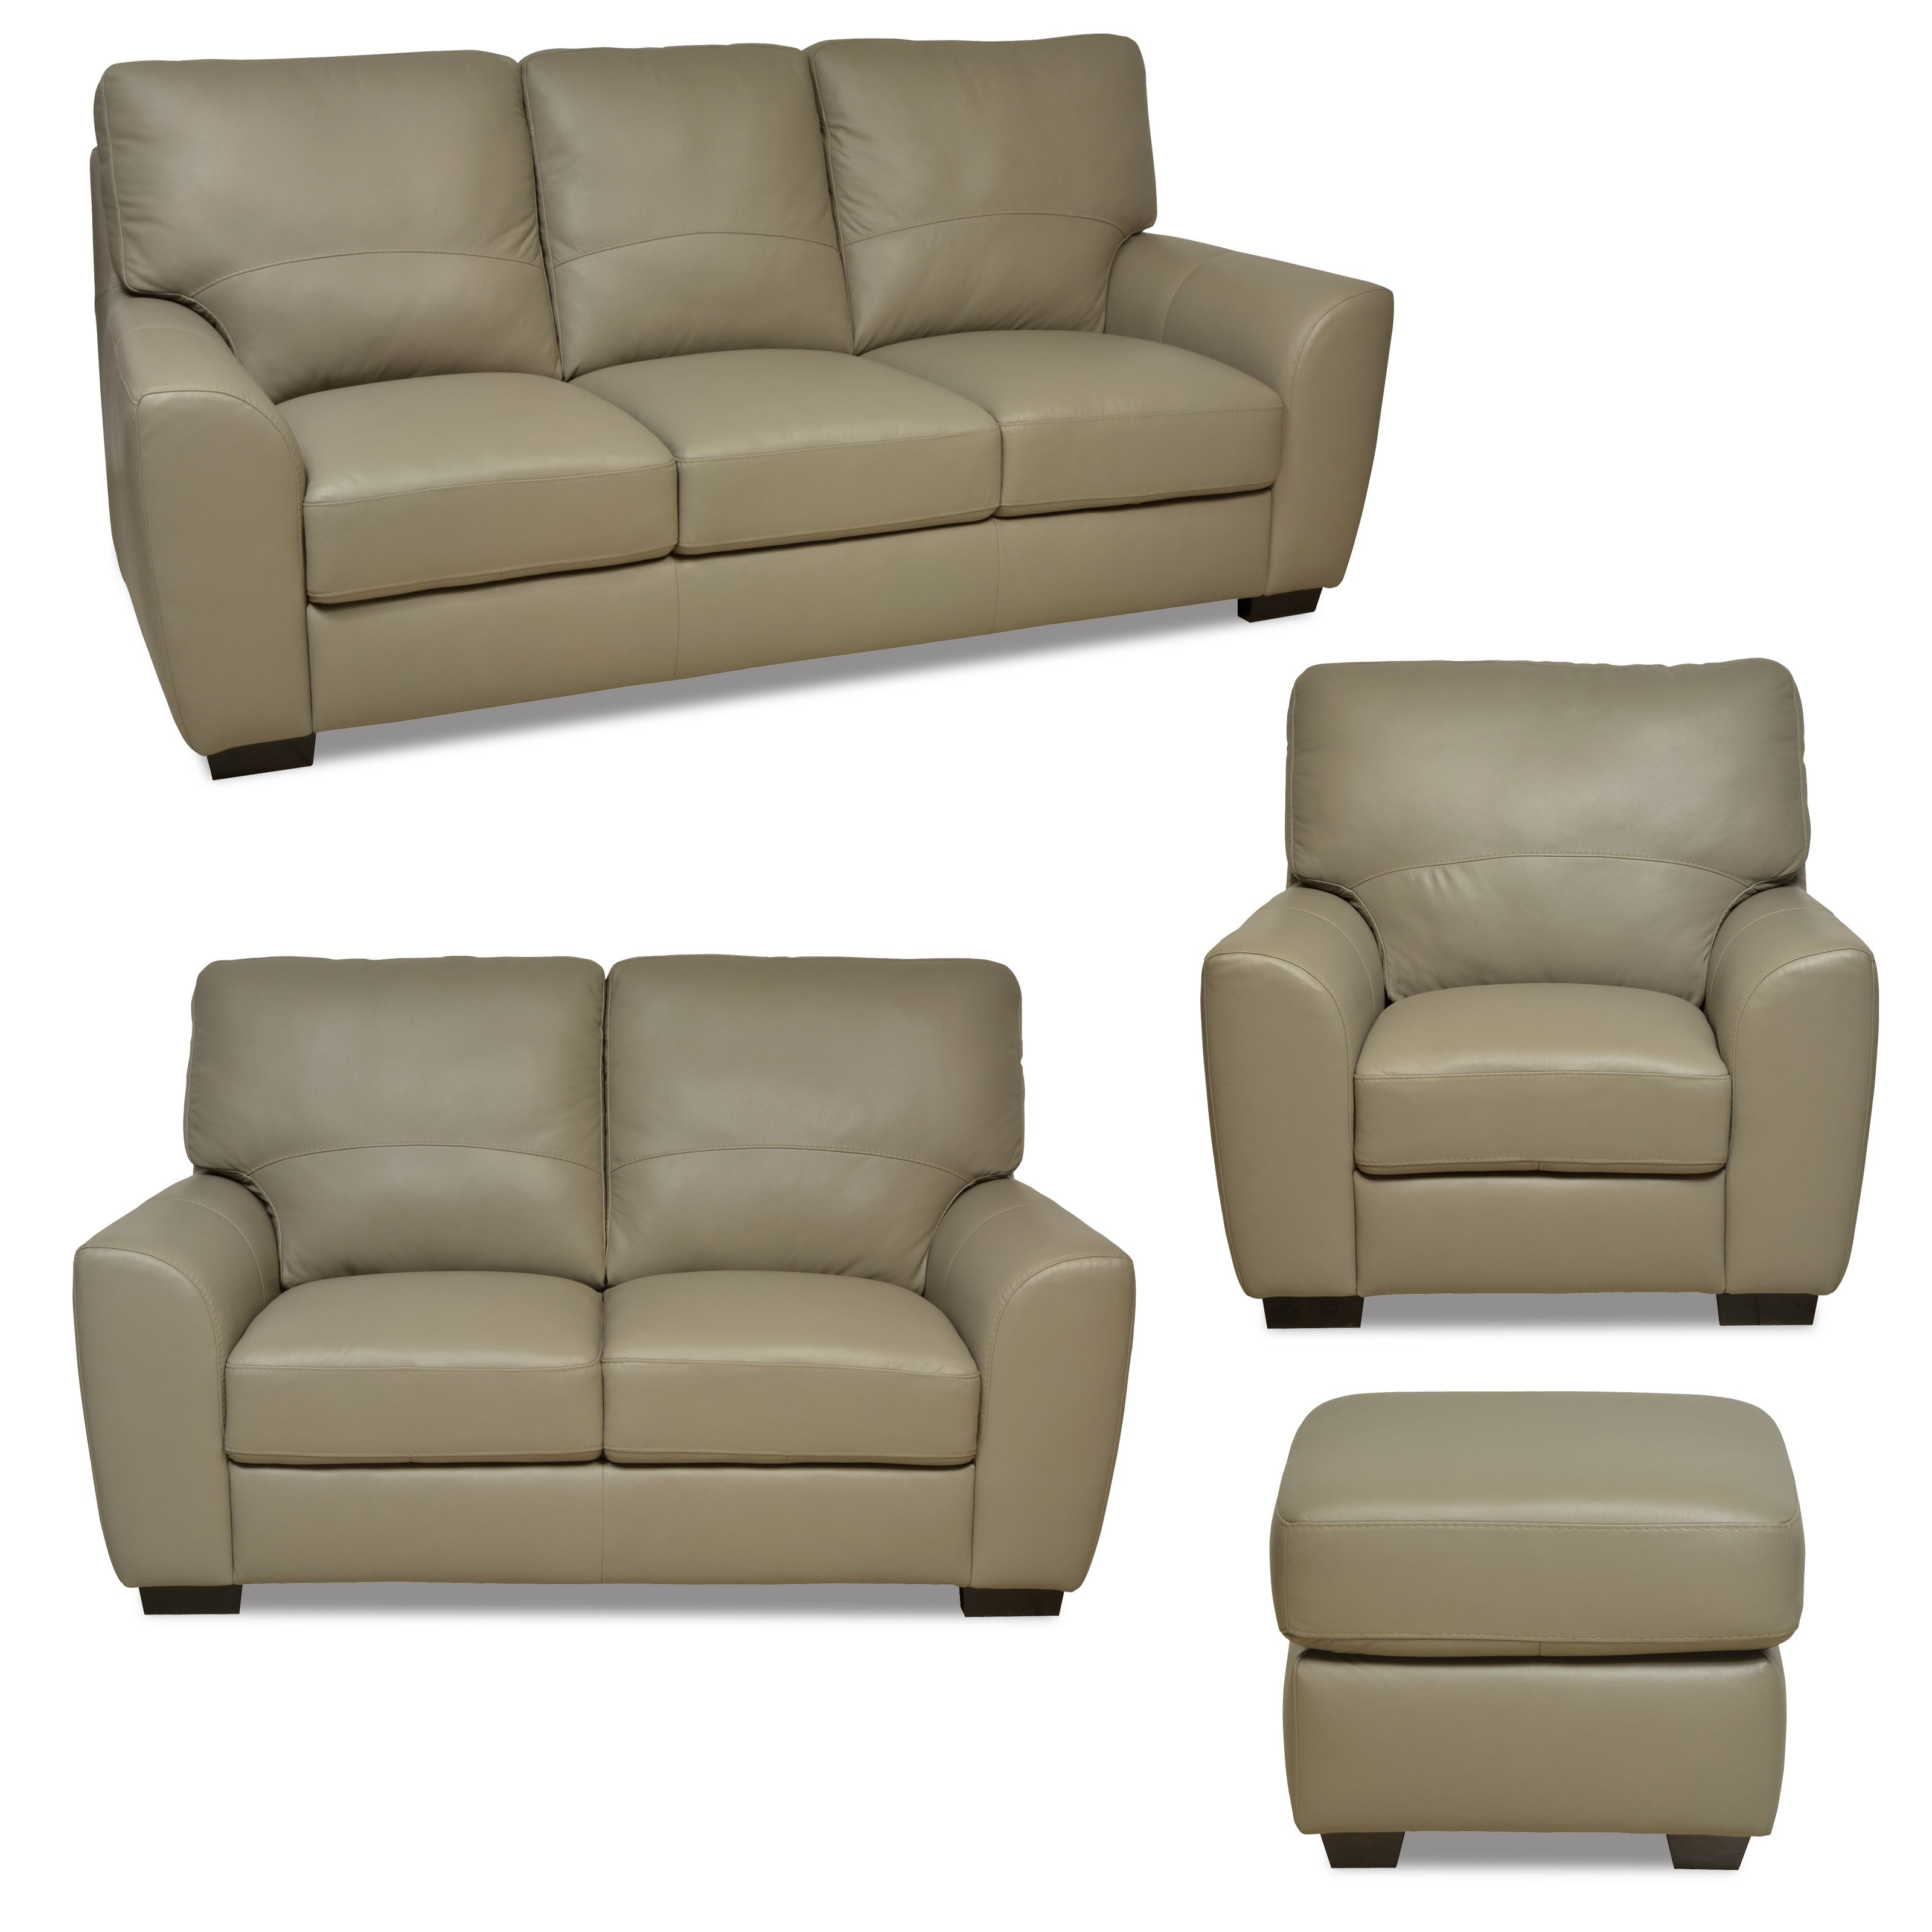 genuine leather sofa and loveseat primitive sofas for sale 4 piece macie collection light beige 100